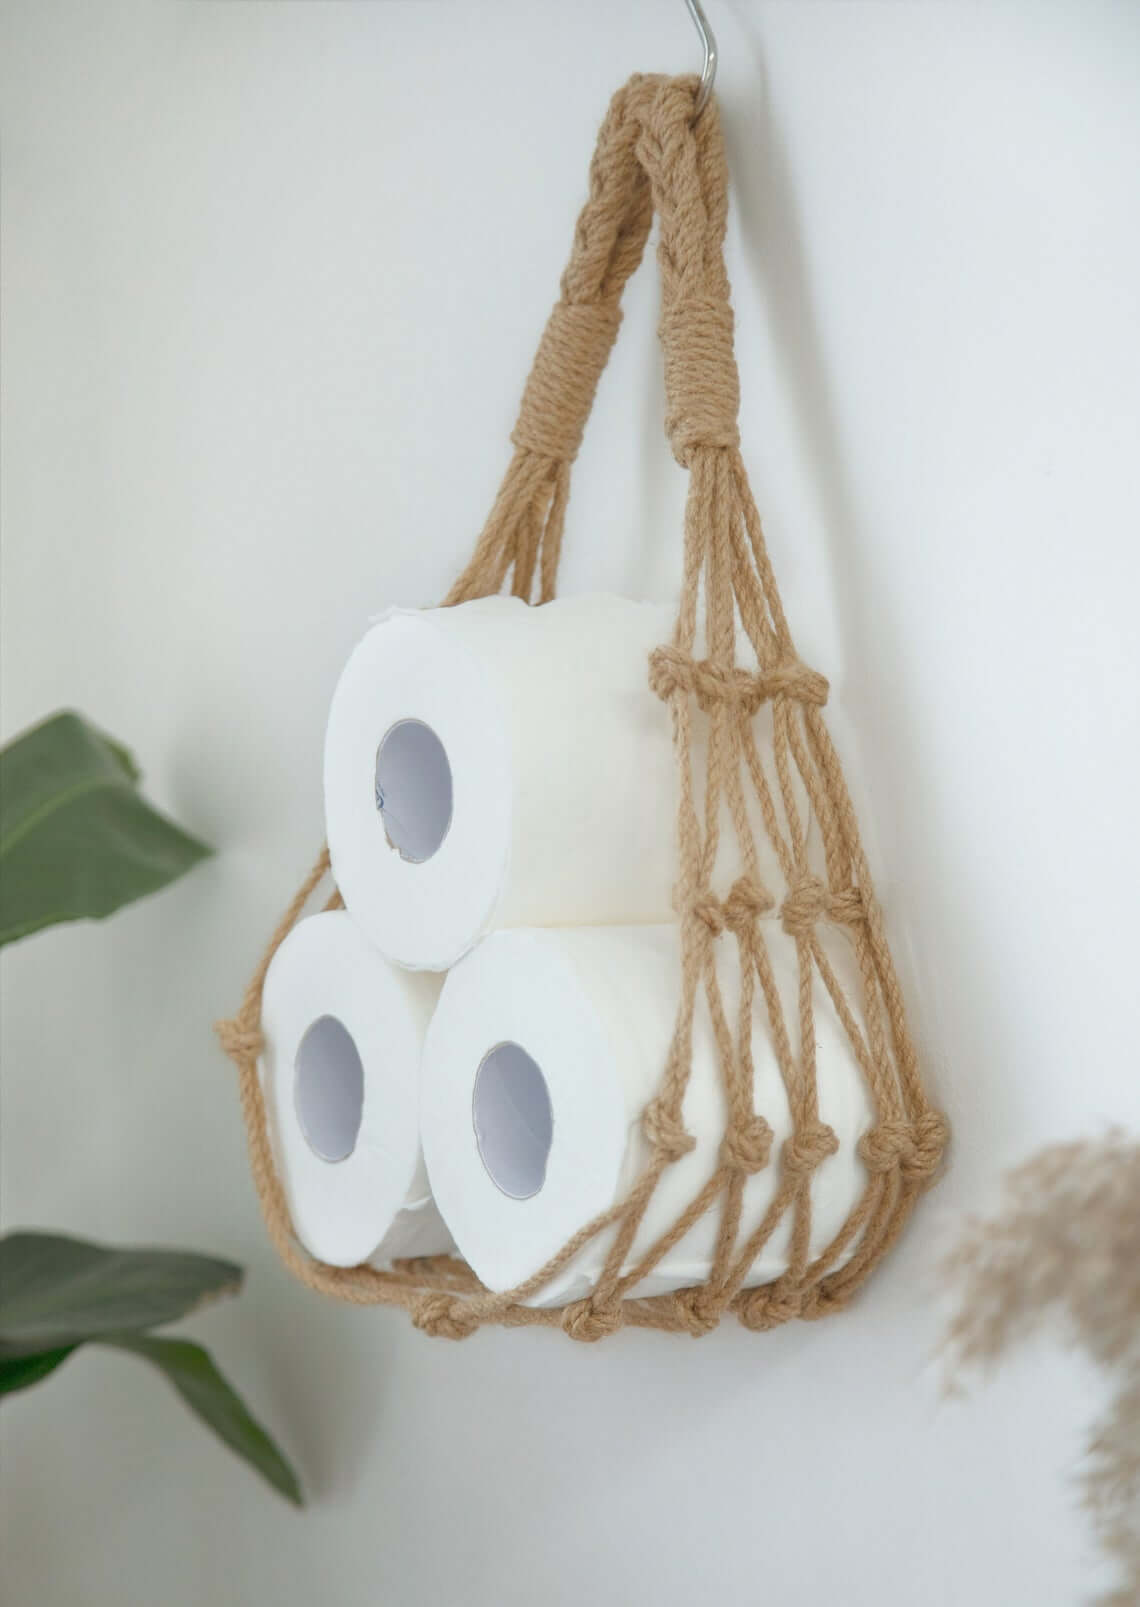 Nautical Rope Hanging Toilet Paper Holder